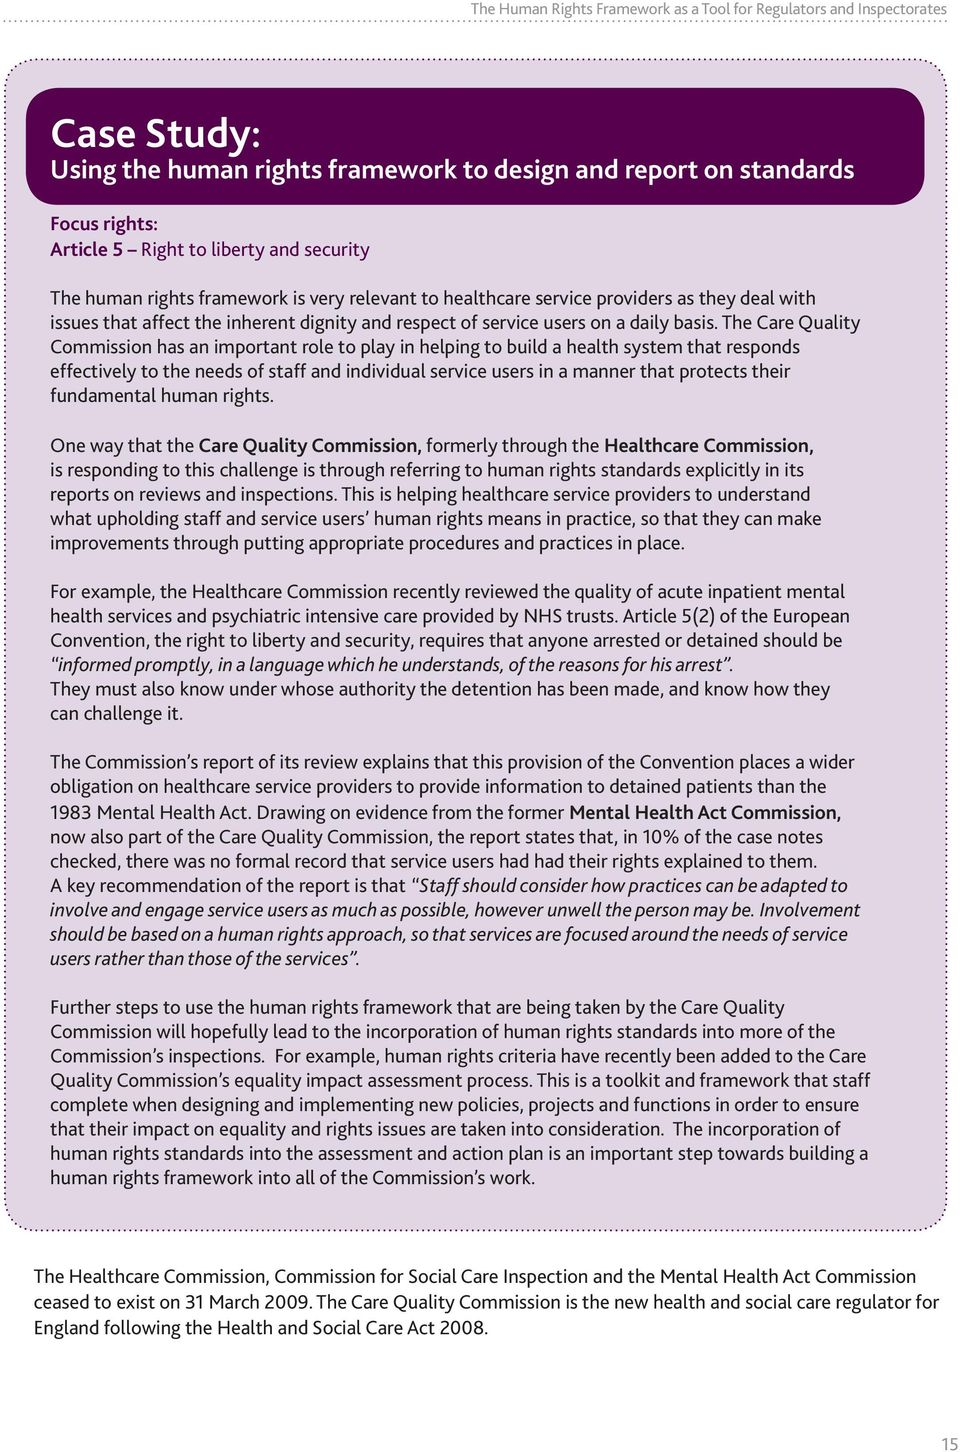 The Care Quality Commission has an important role to play in helping to build a health system that responds effectively to the needs of staff and individual service users in a manner that protects